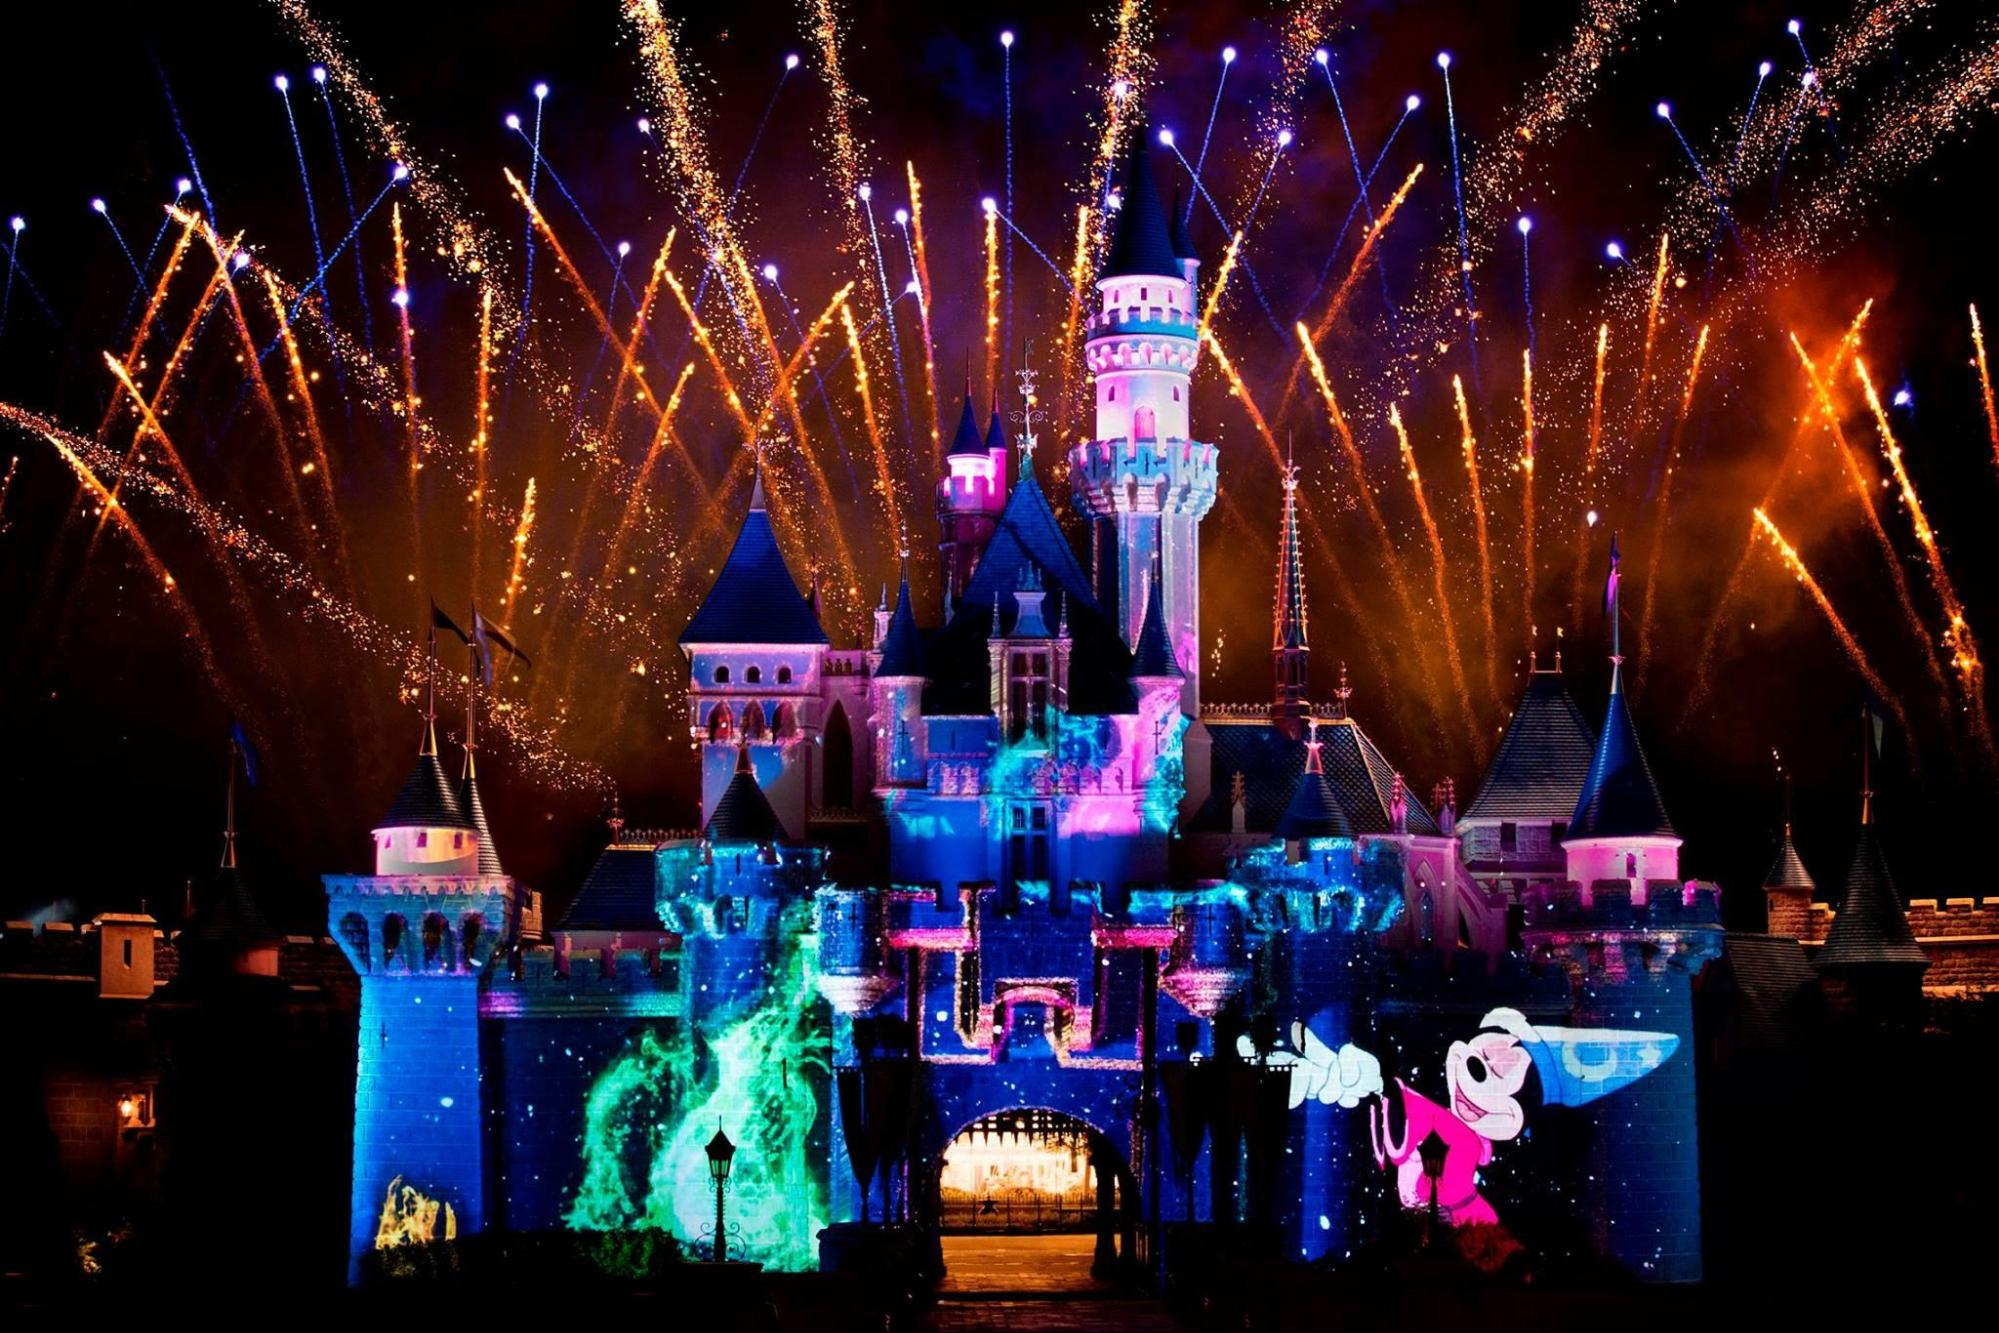 Christmas In Disneyland Hong Kong.8 Reasons Why Hong Kong Disneyland Is The Perfect Place To